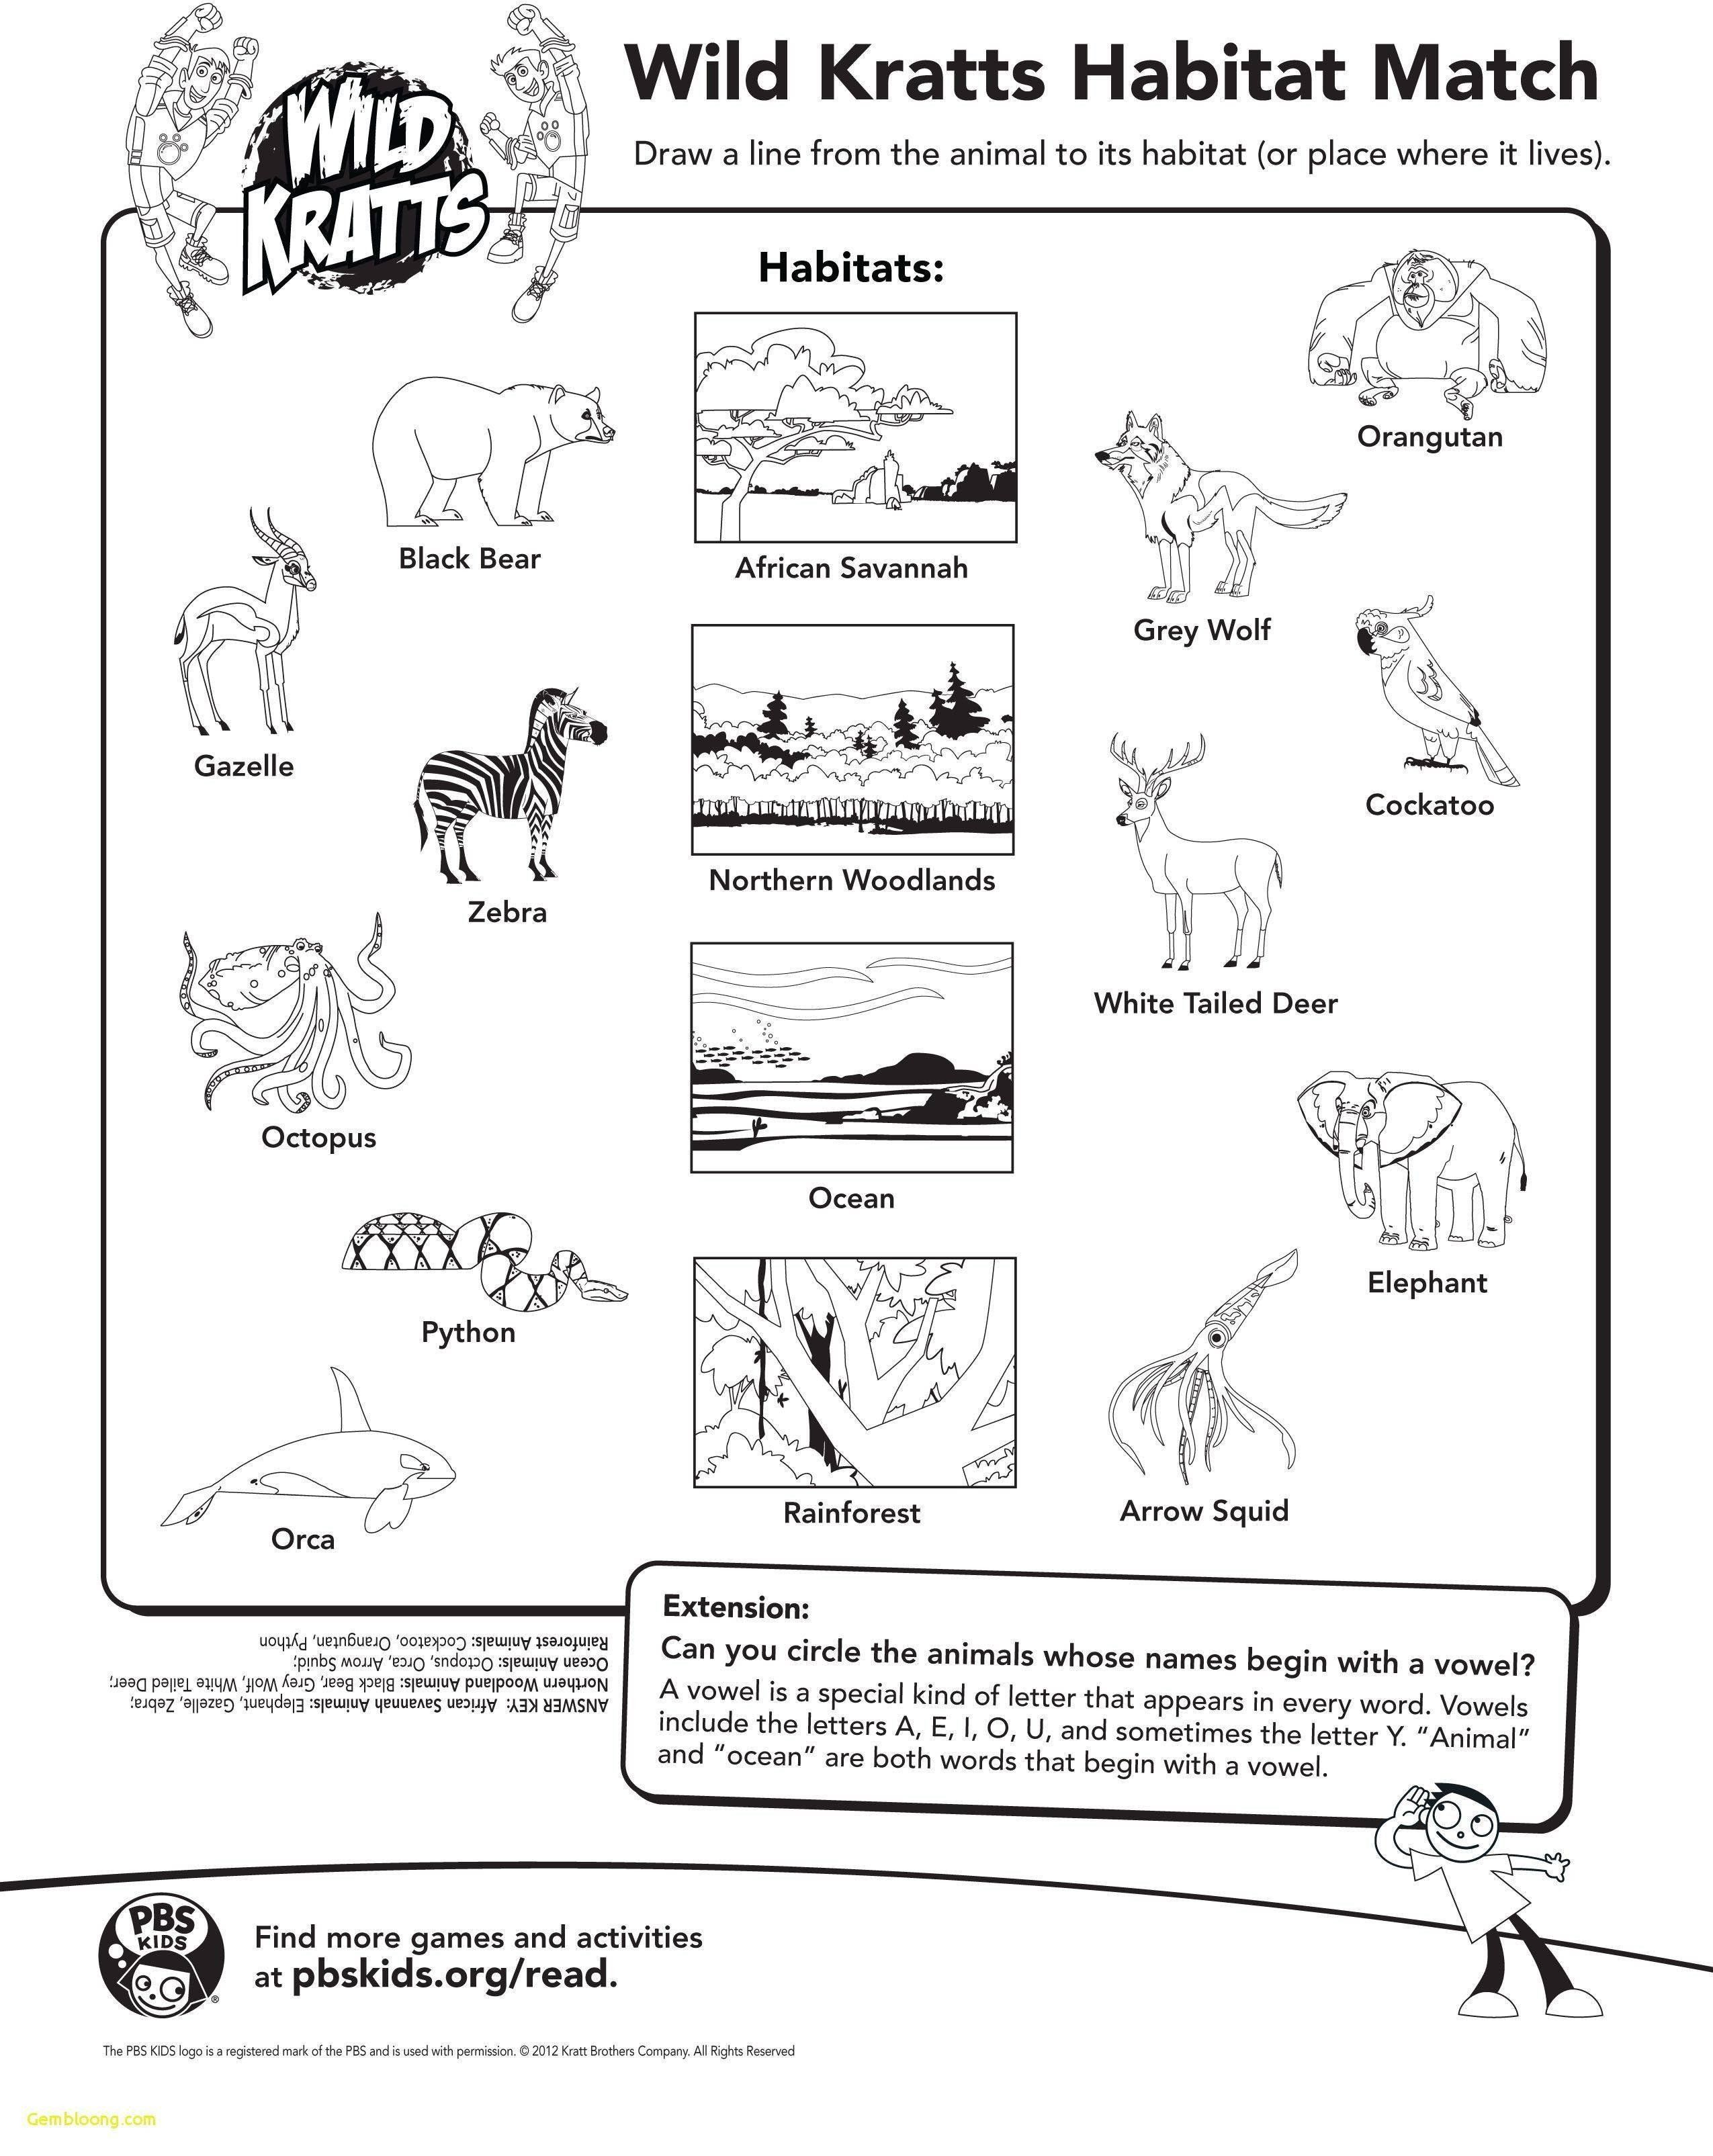 Wild Kratts Coloring Pages Elegant Wild Kratts Coloring Pages Wild Kratts Wild Kratts Birthday Wild Kratts Party [ 3210 x 2550 Pixel ]